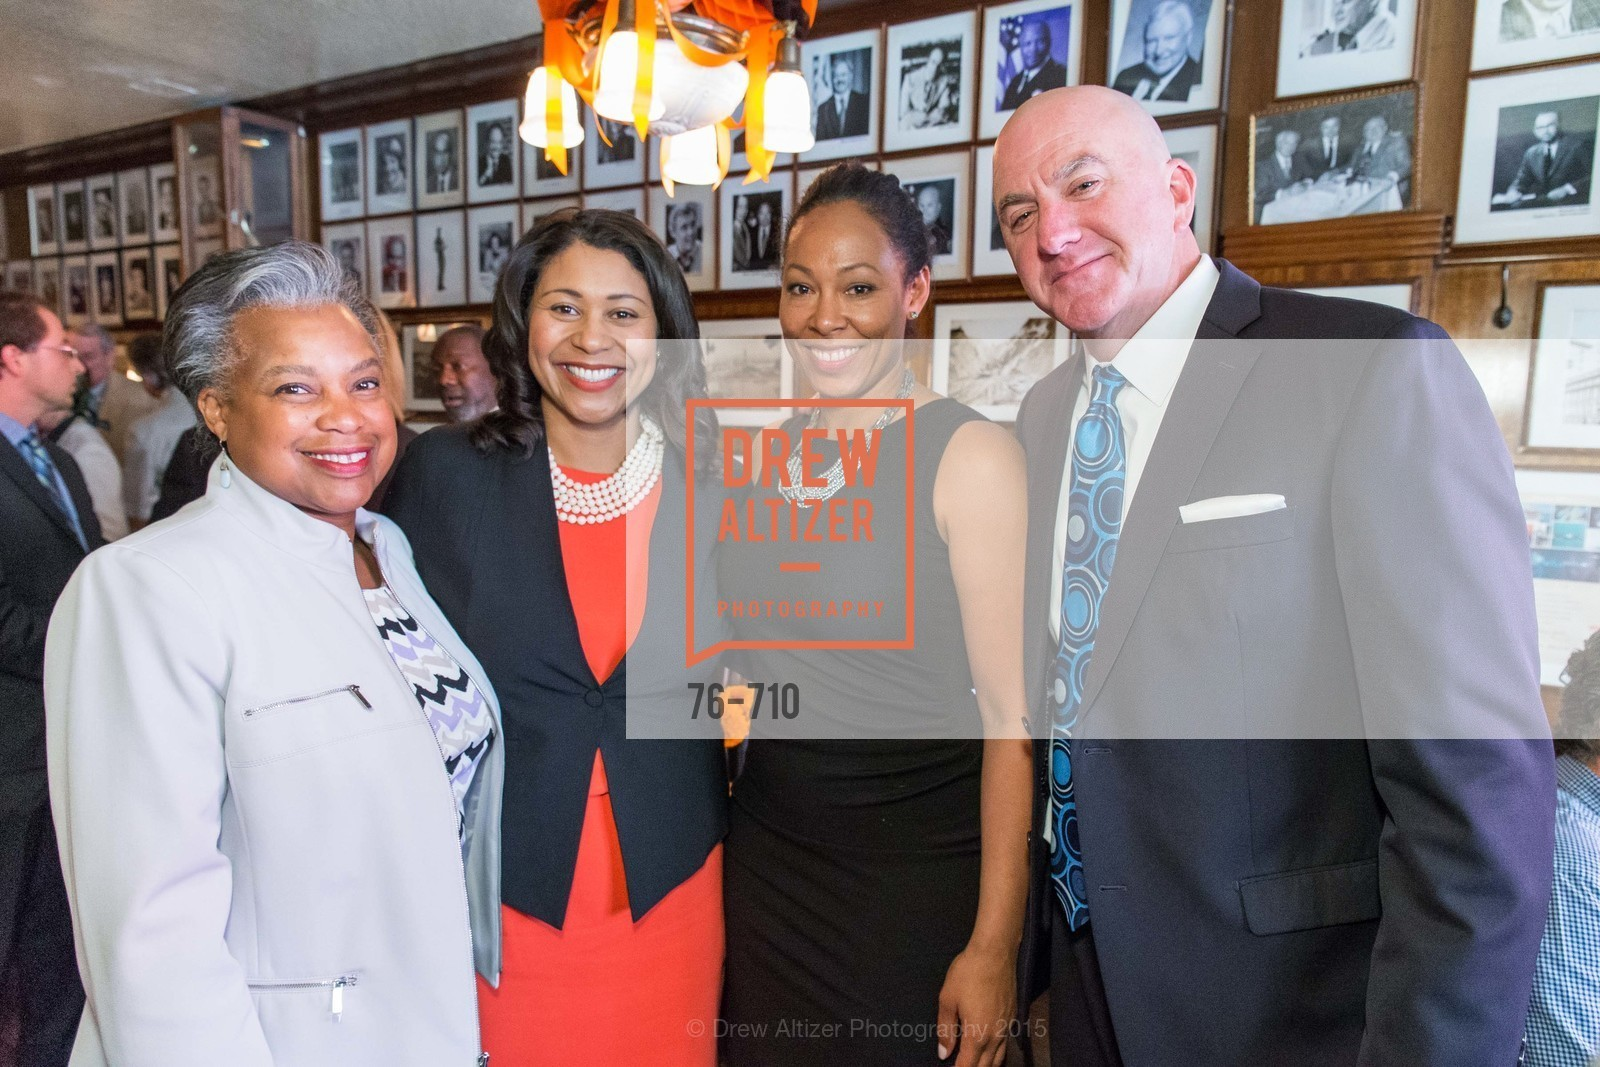 Francee Covington, London Breed, Adrianne Sims, Tom O'Connor, 3-RING LUNCH CELEBRATION Honoring RENEL BROOKS-MOON, US, June 8th, 2015,Drew Altizer, Drew Altizer Photography, full-service agency, private events, San Francisco photographer, photographer california